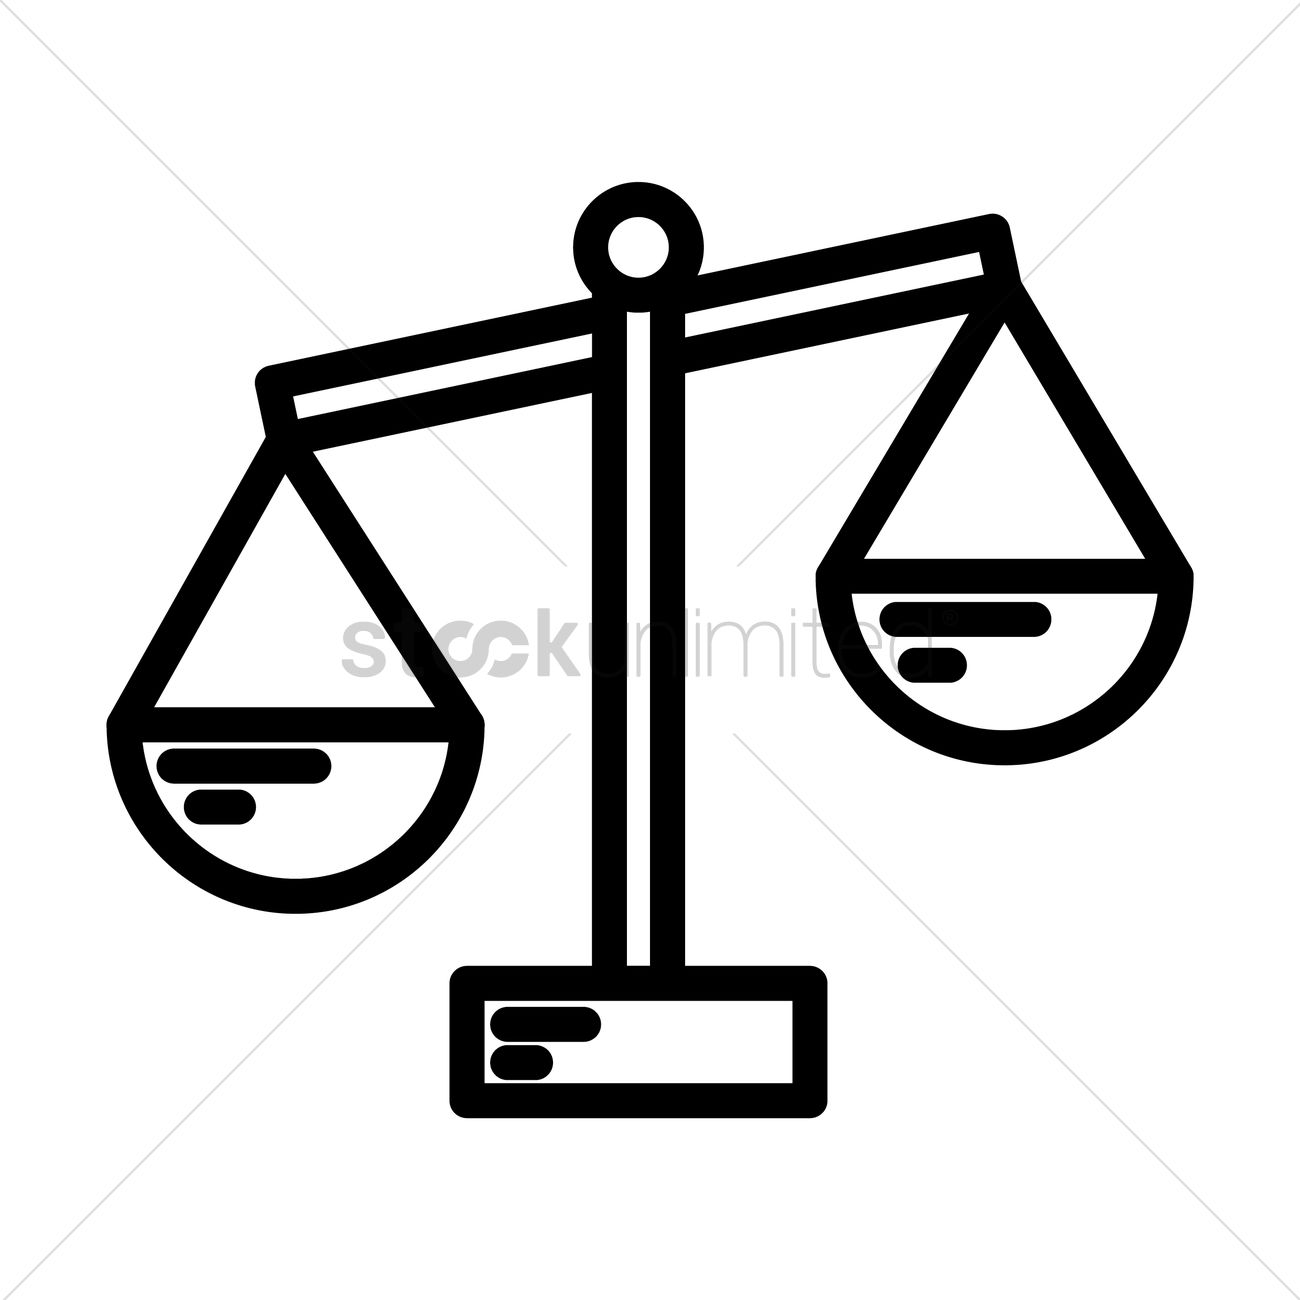 Balance scale concept vector image 1951300 stockunlimited balance scale concept vector graphic biocorpaavc Images